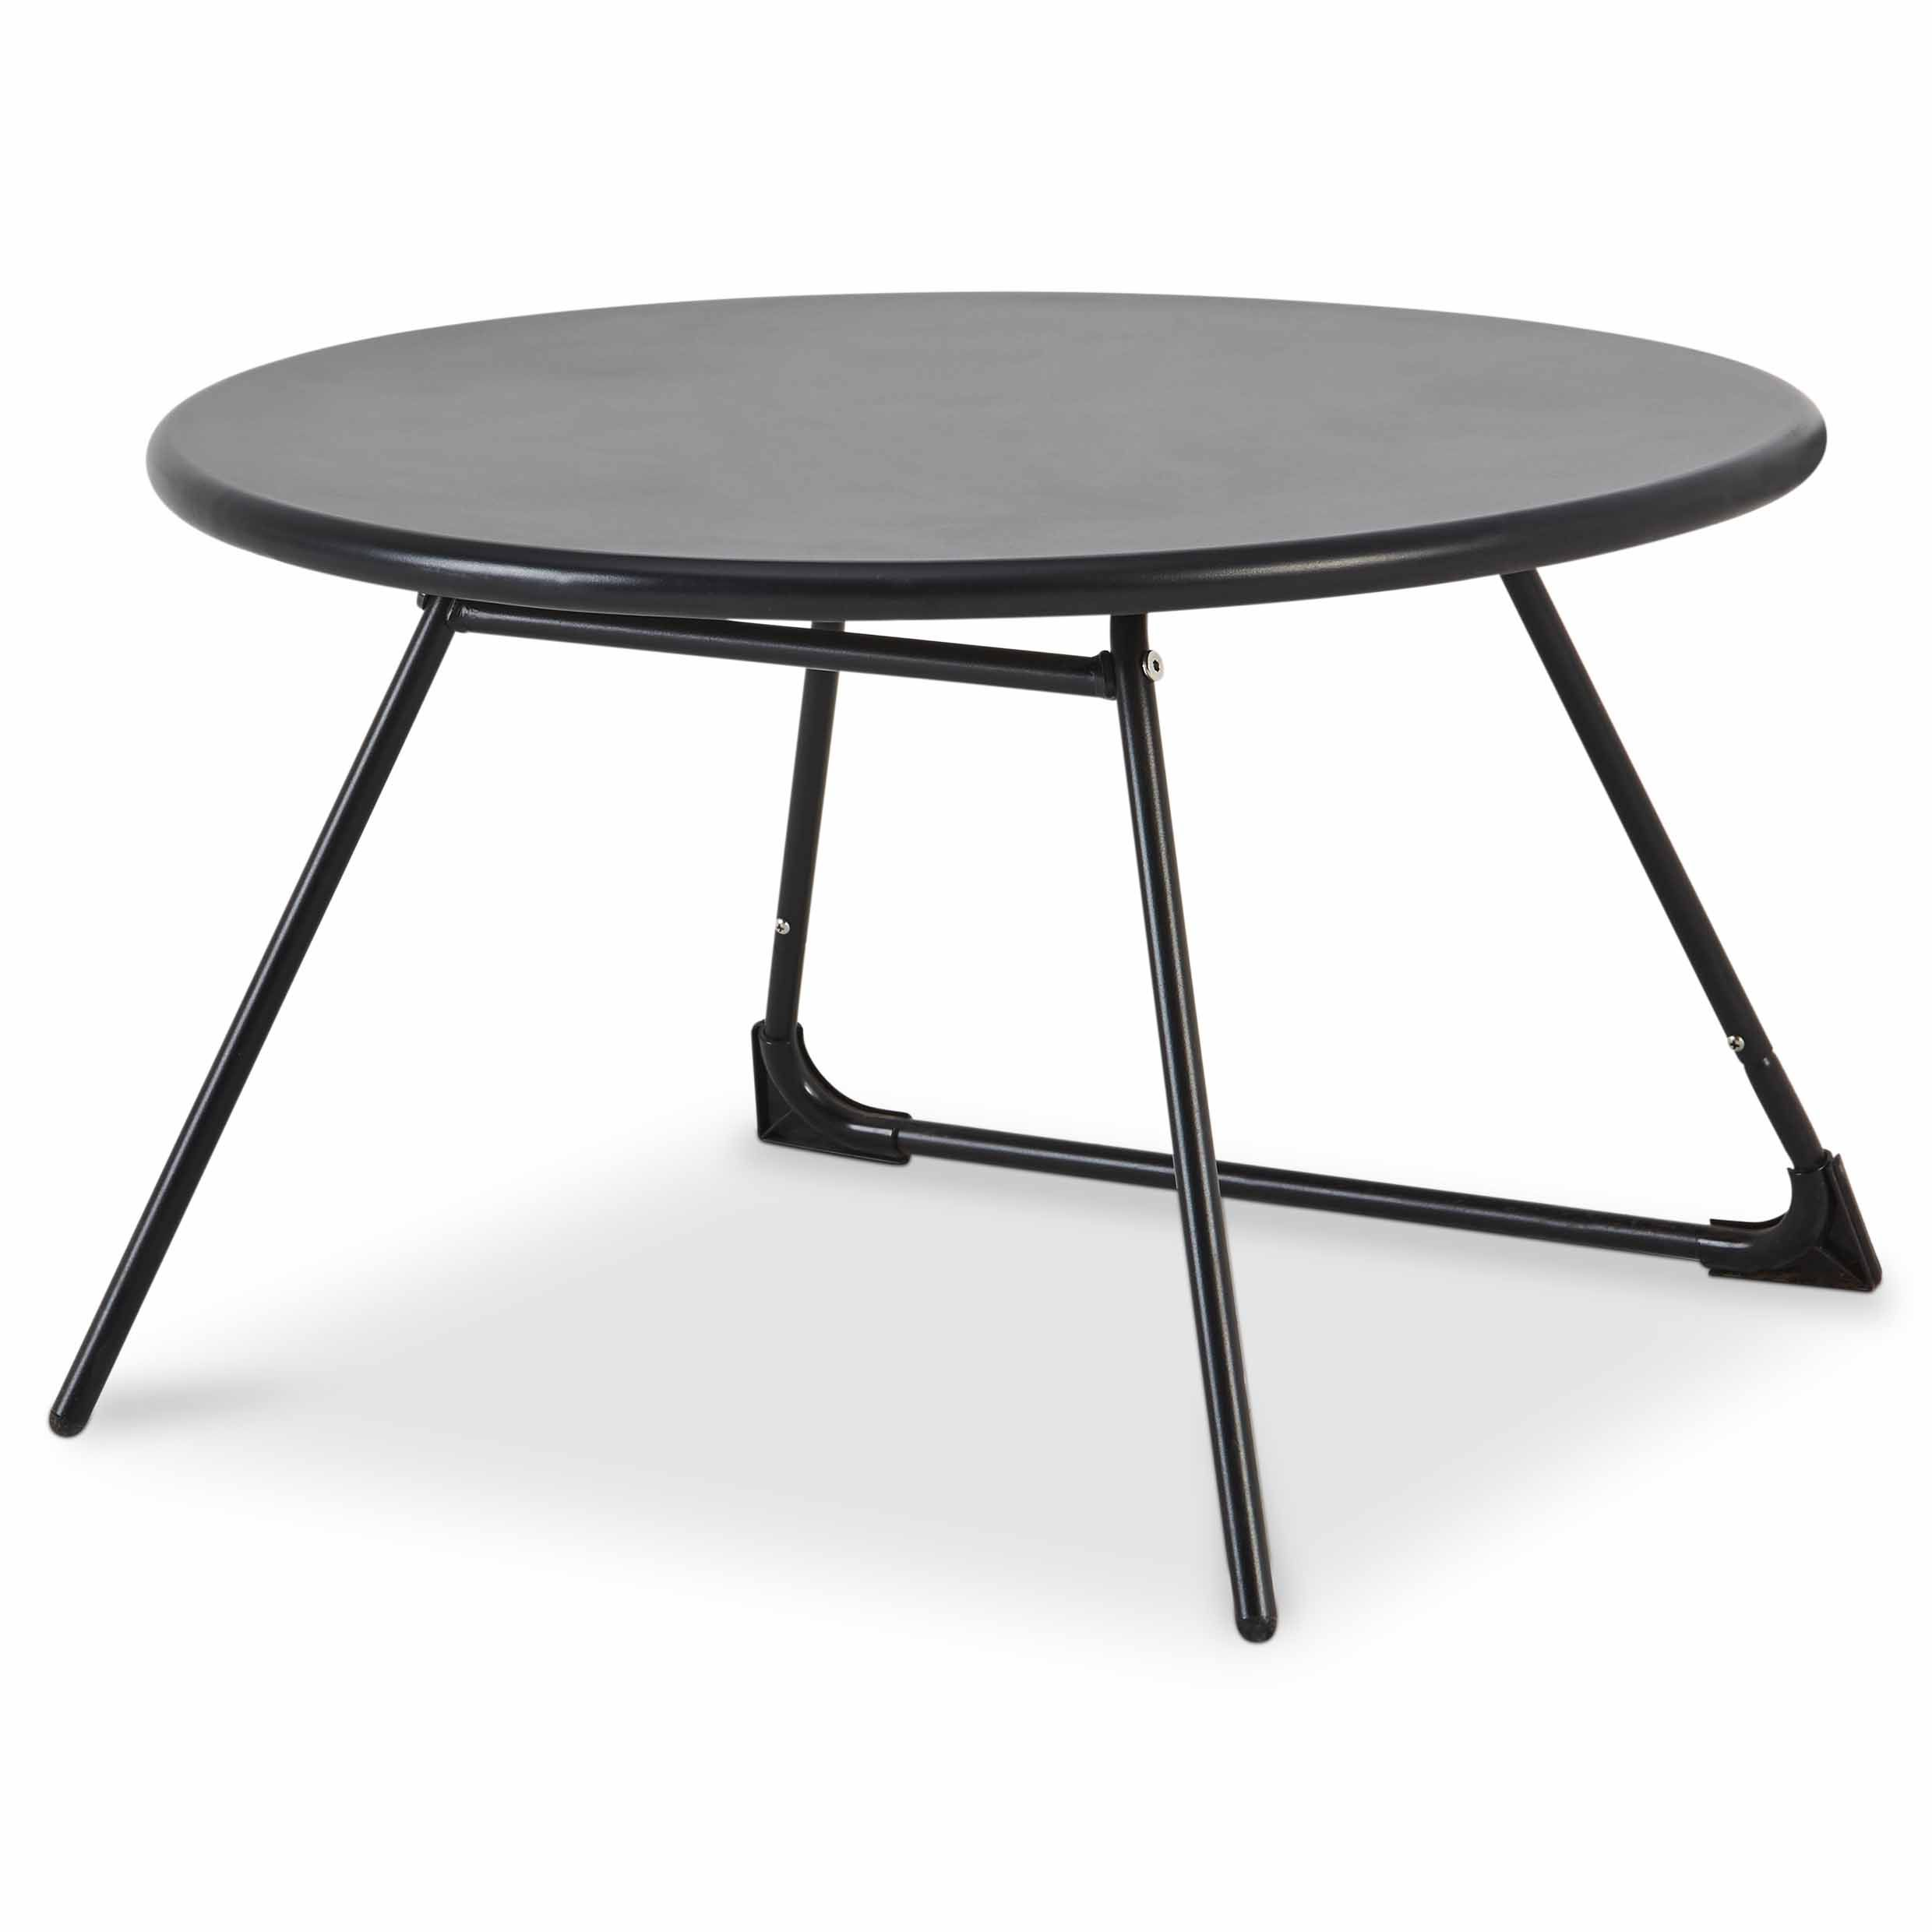 Table basse de jardin Nova ø70 cm noir | Inspirations Déco | Table ...